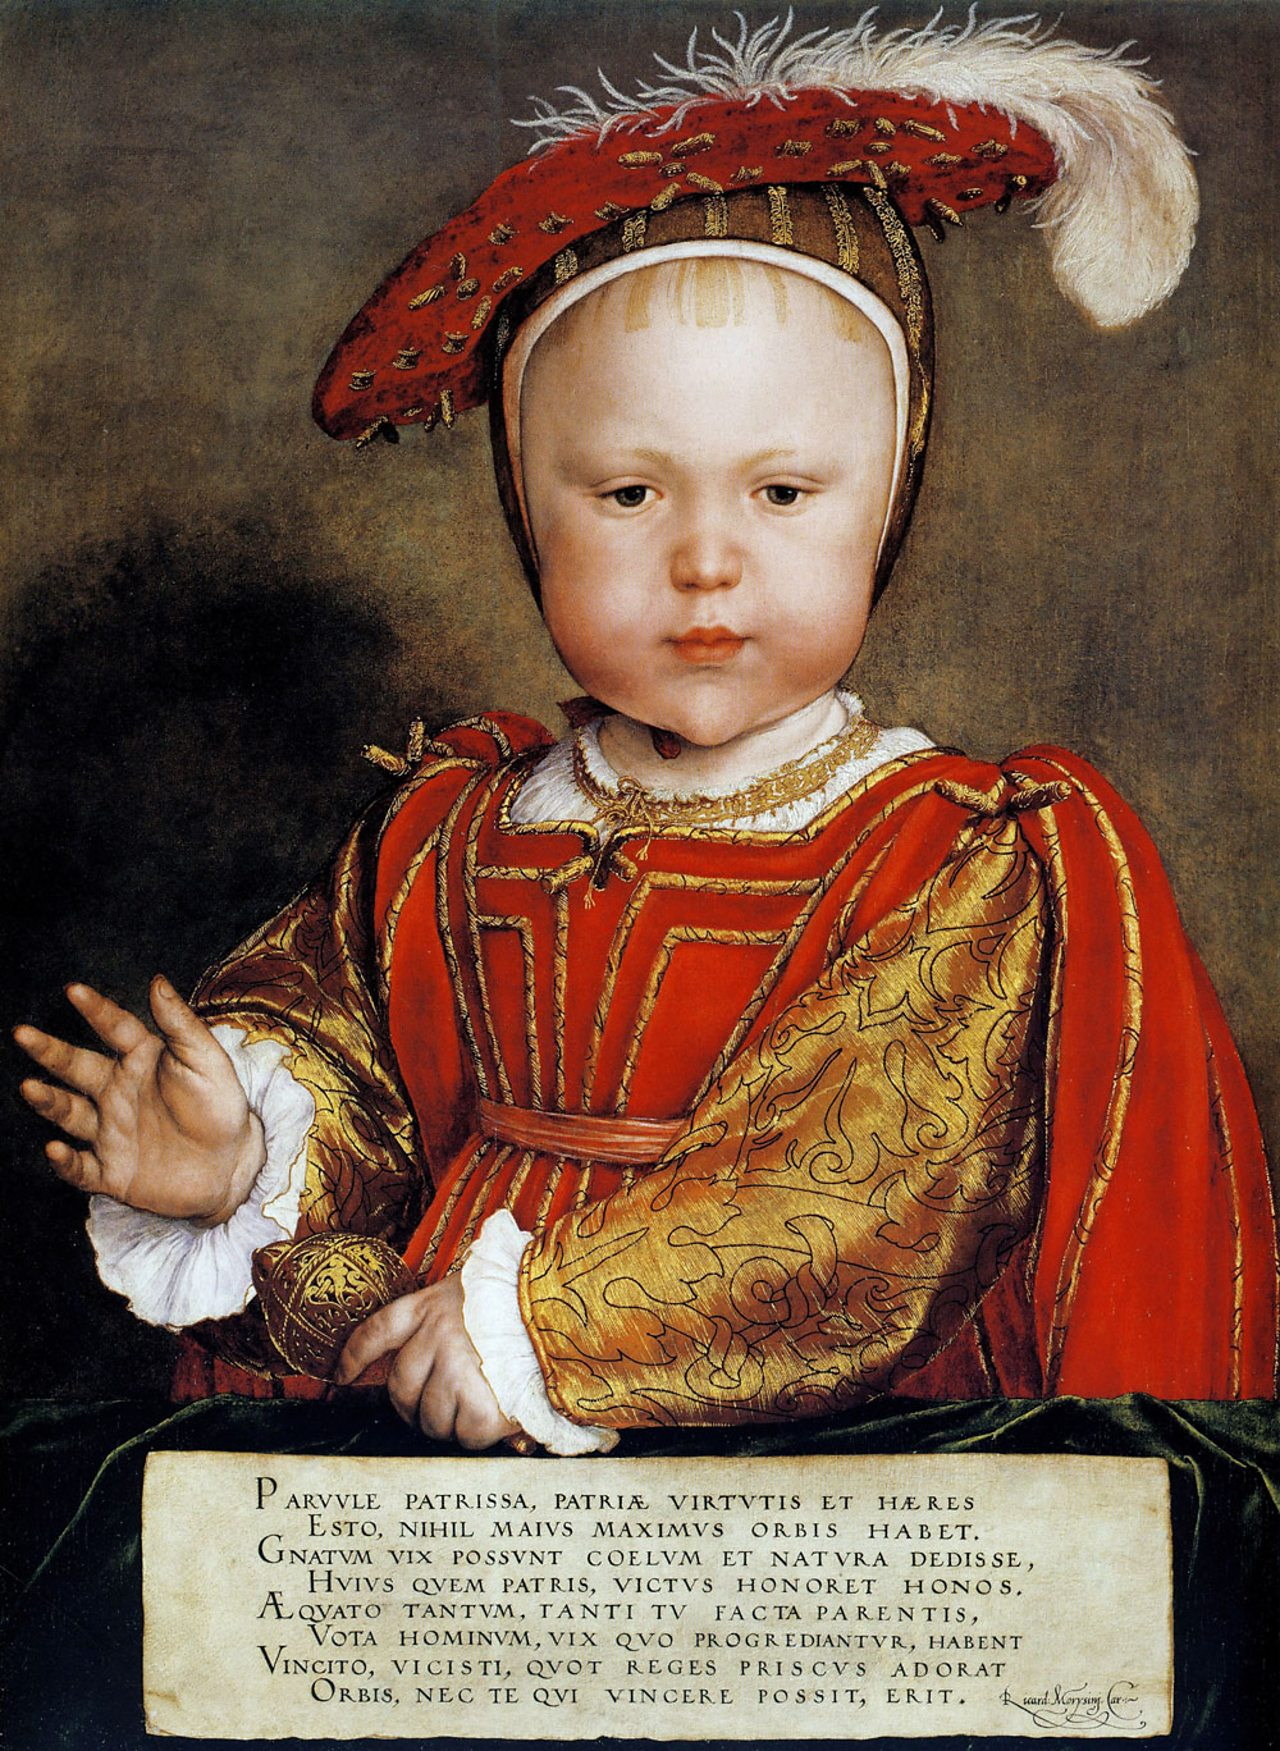 Henry's third wife Jane Seymour gave birth to his only son, Edward. (Hans Holbein, around 1538)